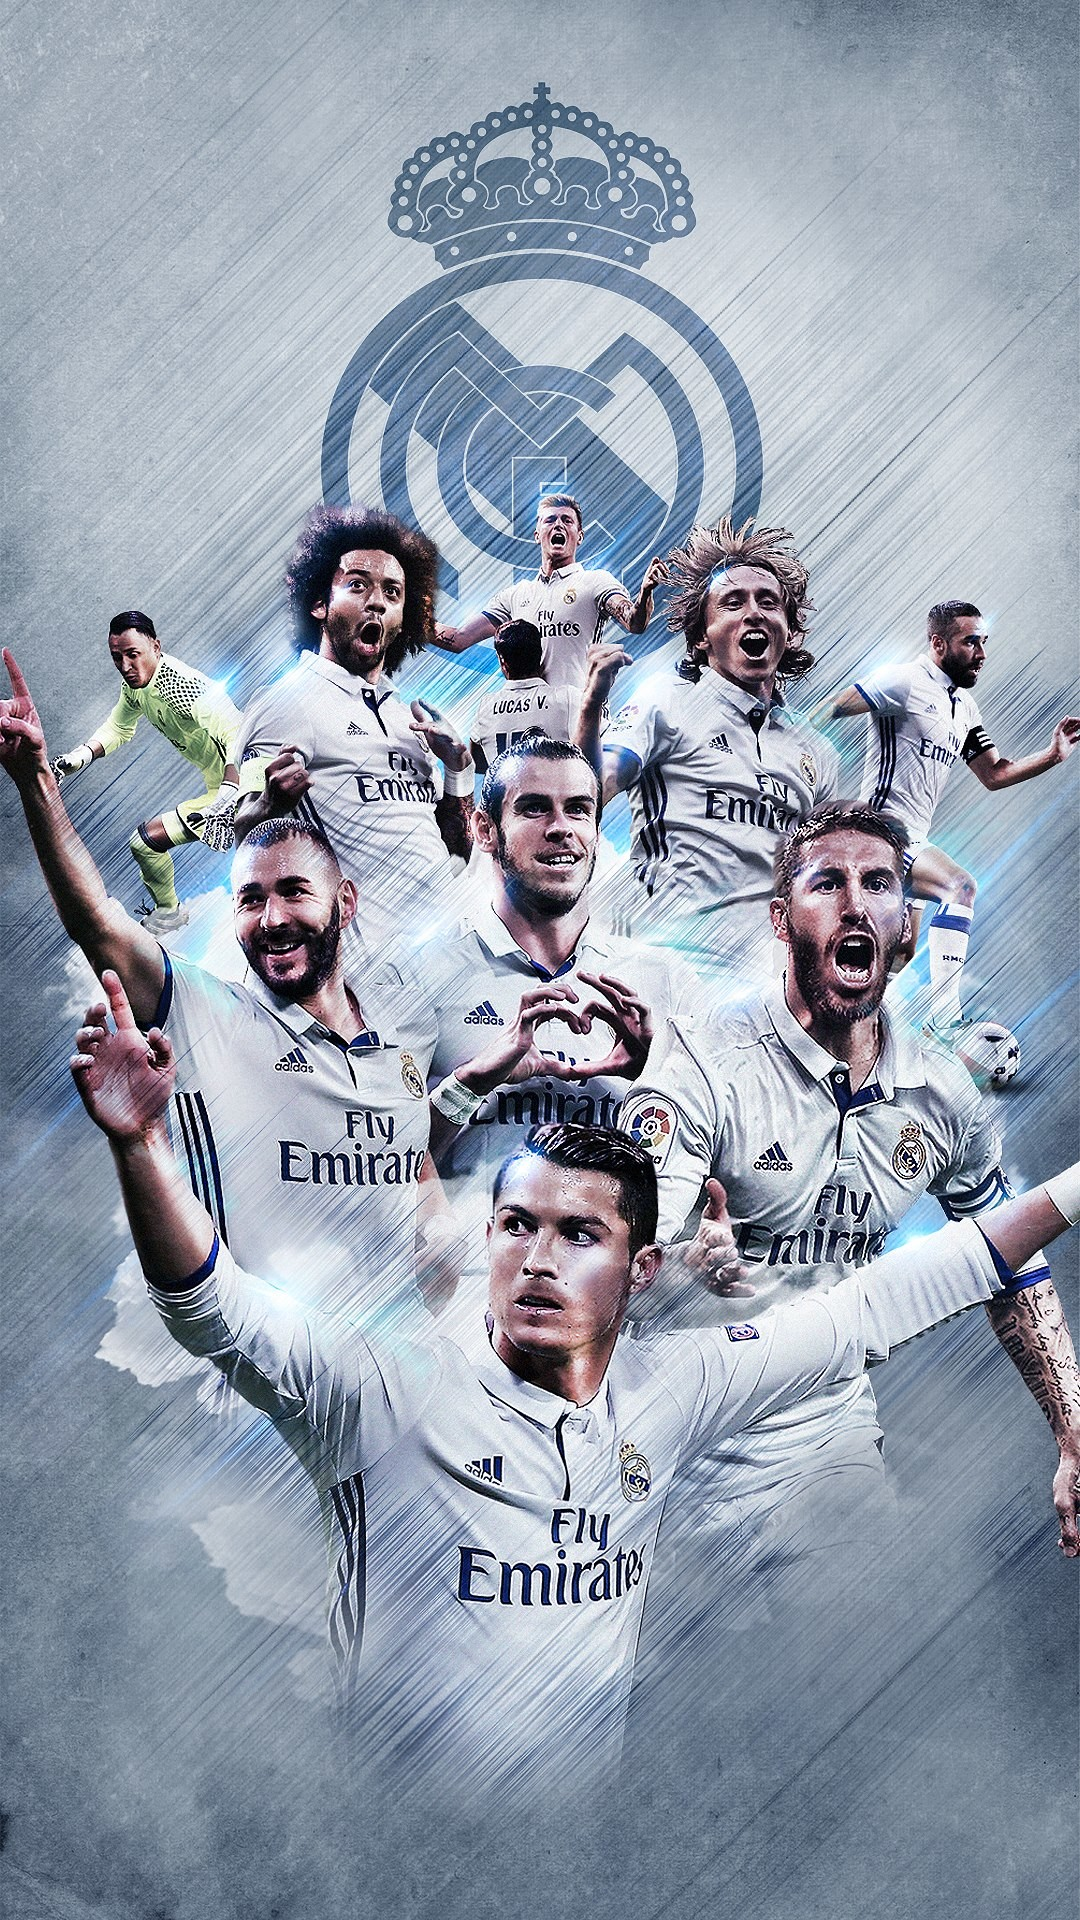 Real madrid wallpaper full hd 2018 72 images - Real madrid pictures wallpapers 2017 ...